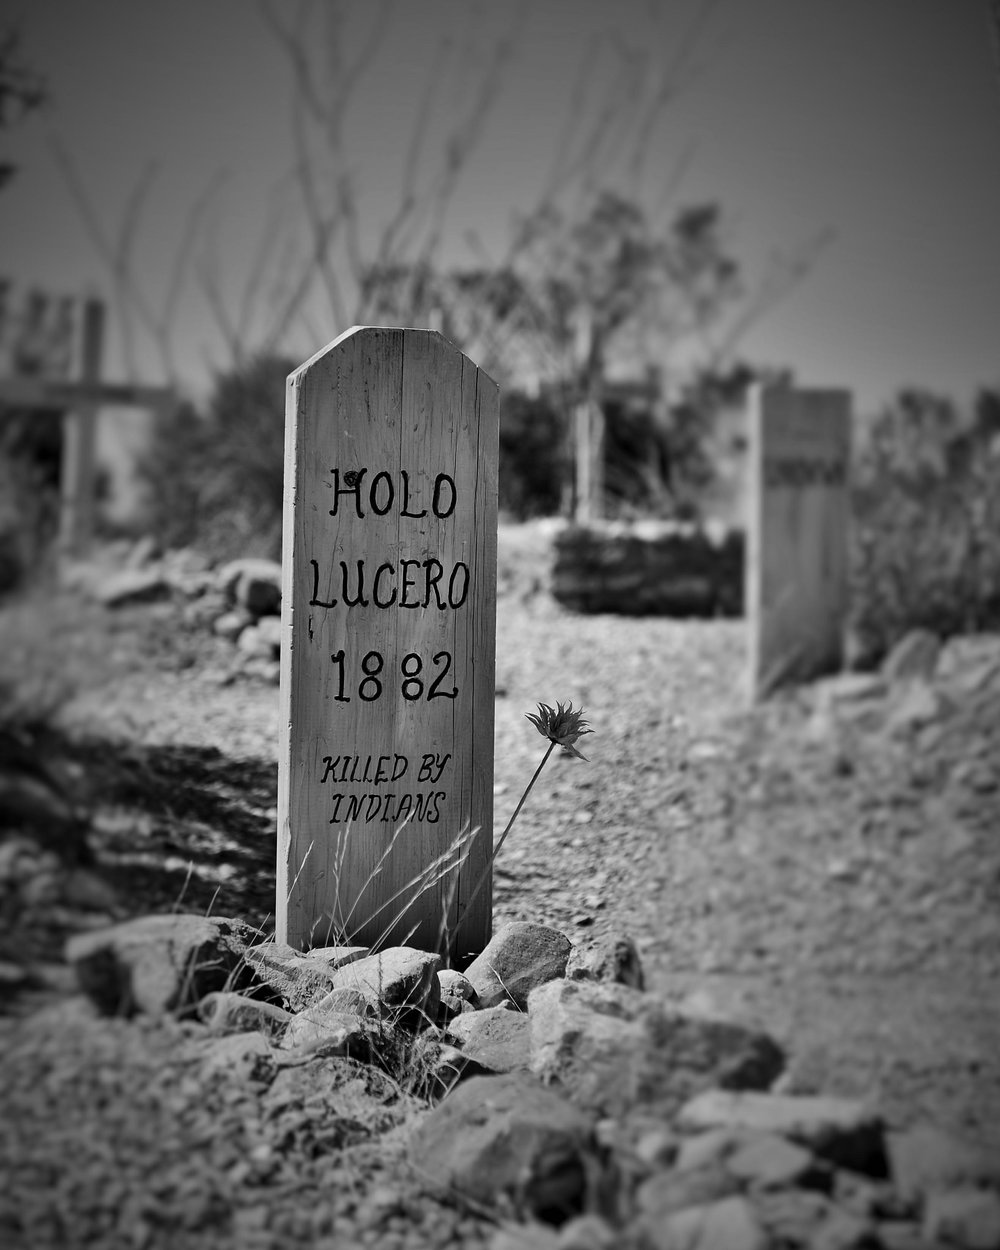 Killed by indians, Tombstone, Az.